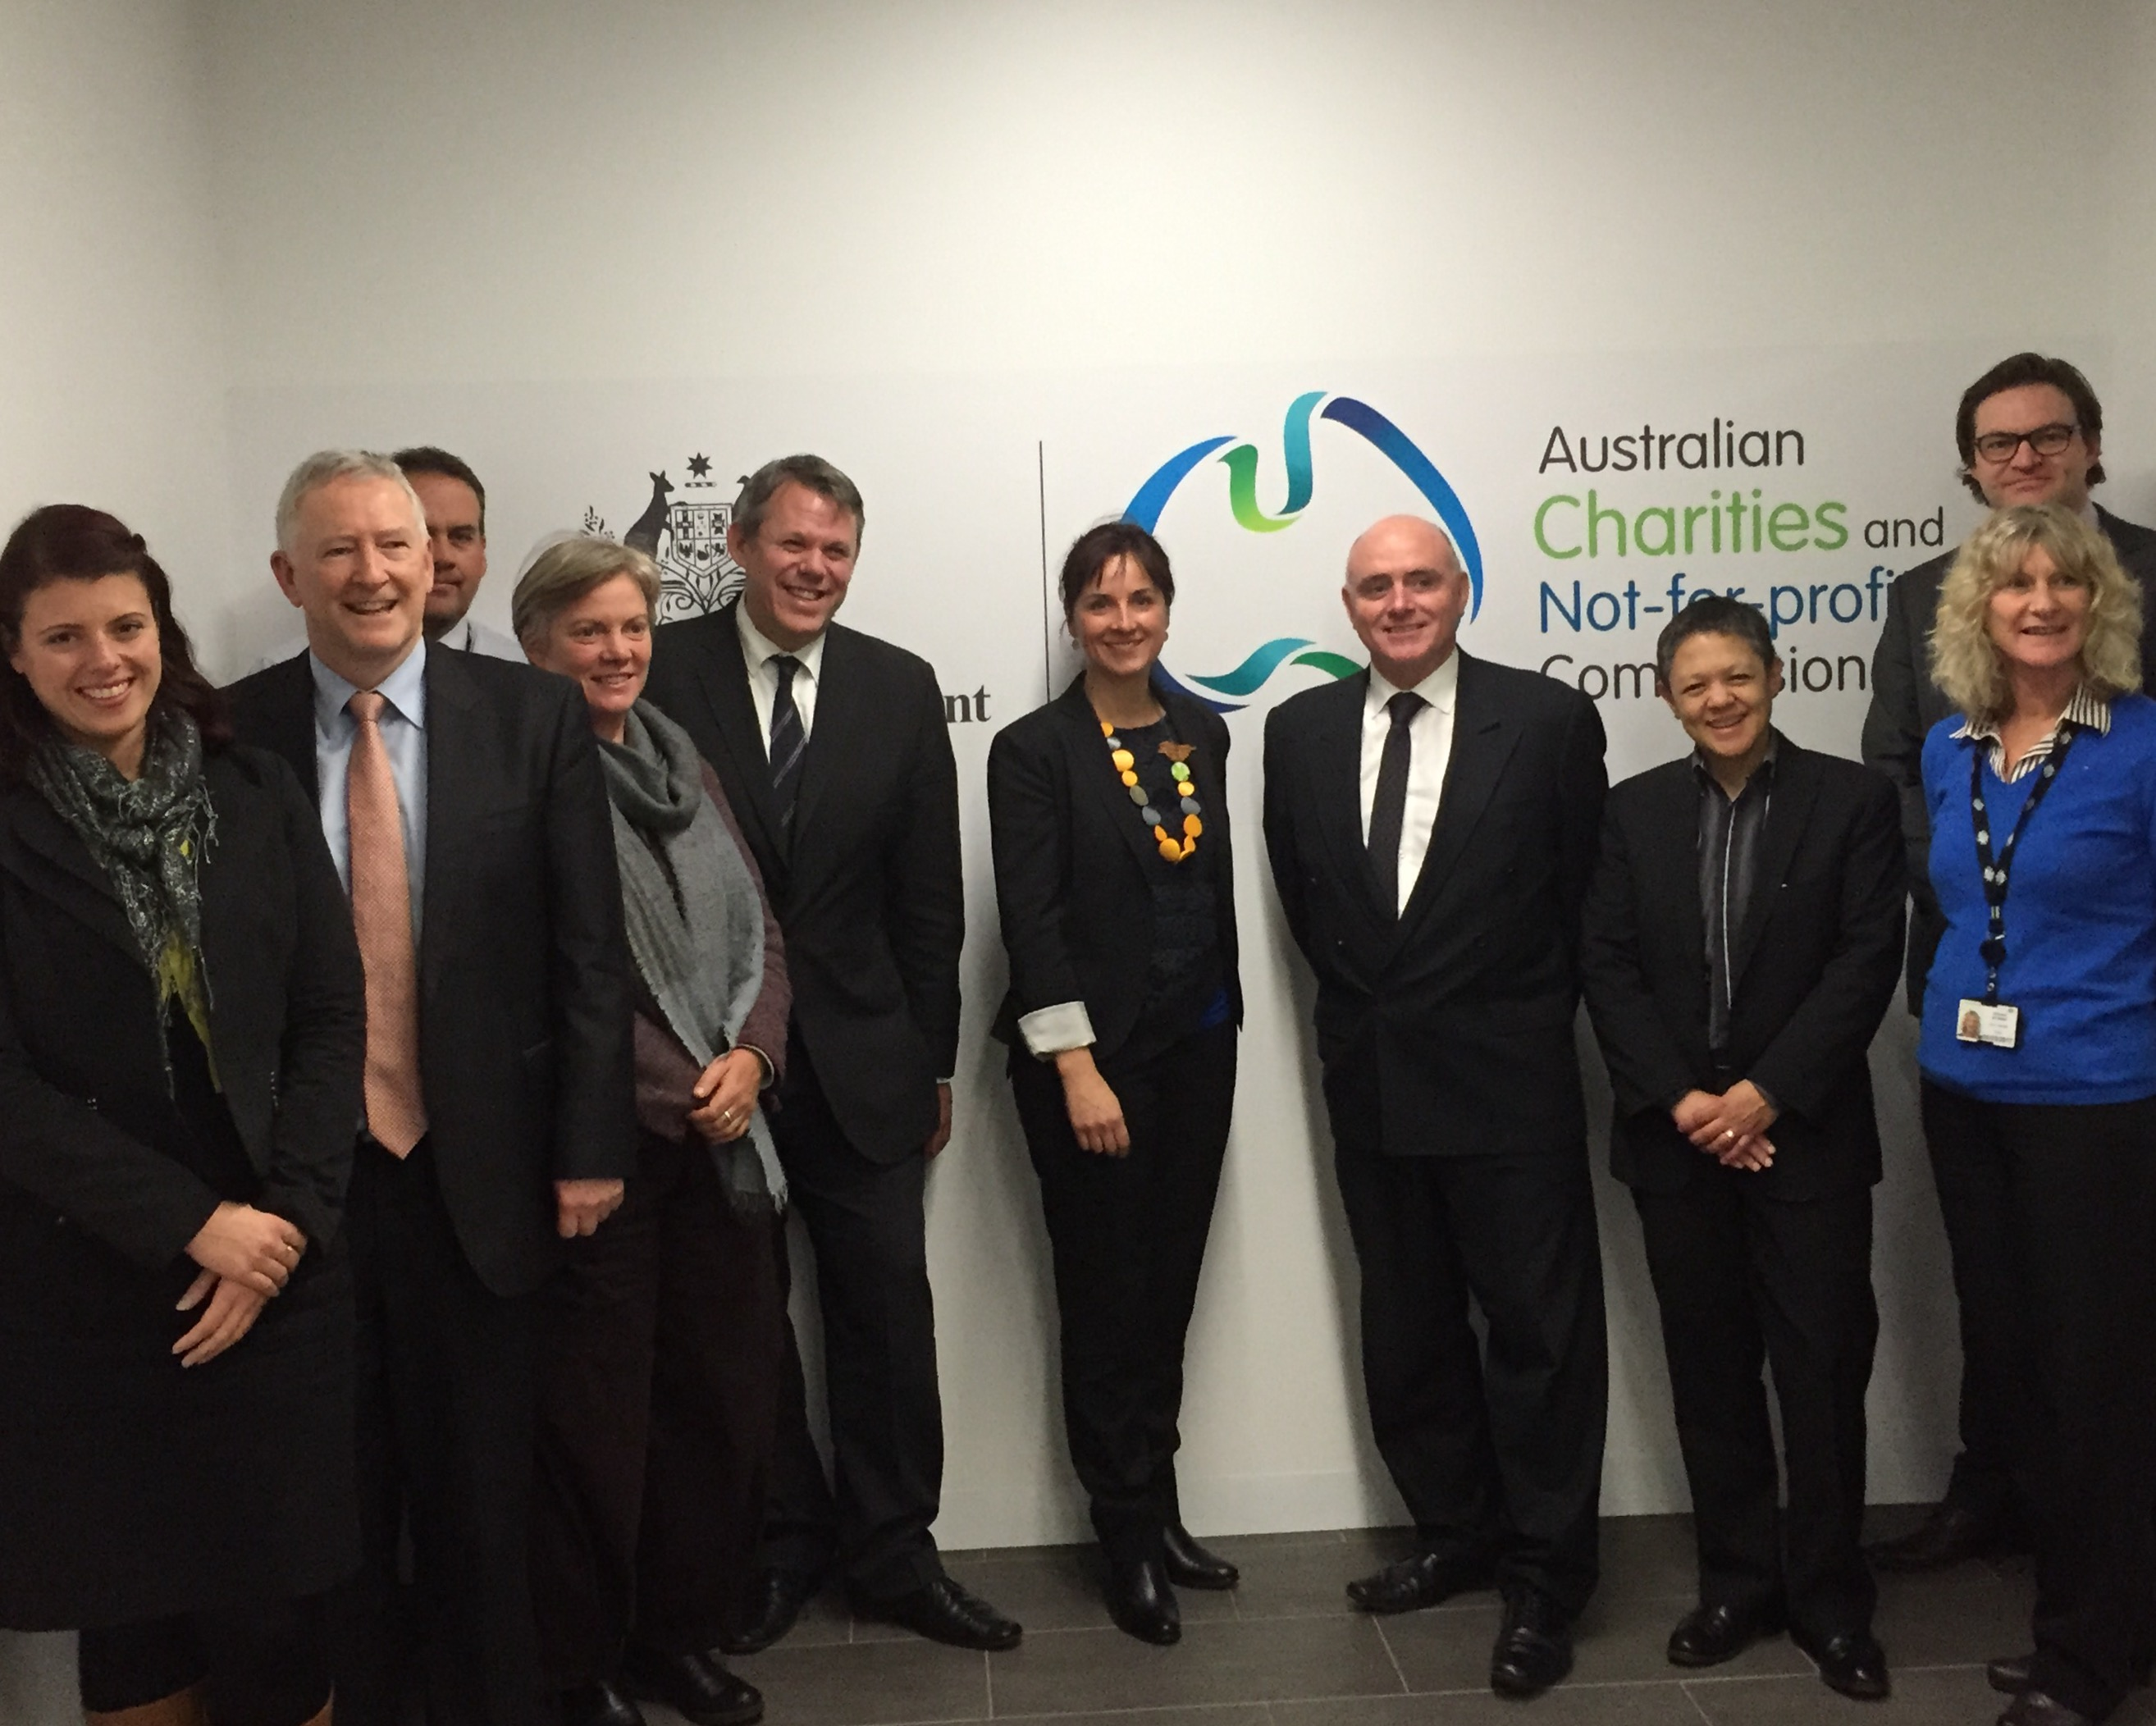 Prime Minister's Community Business Partnership meets with the Australian Charities and Not-for-profits Commission (ACNC)